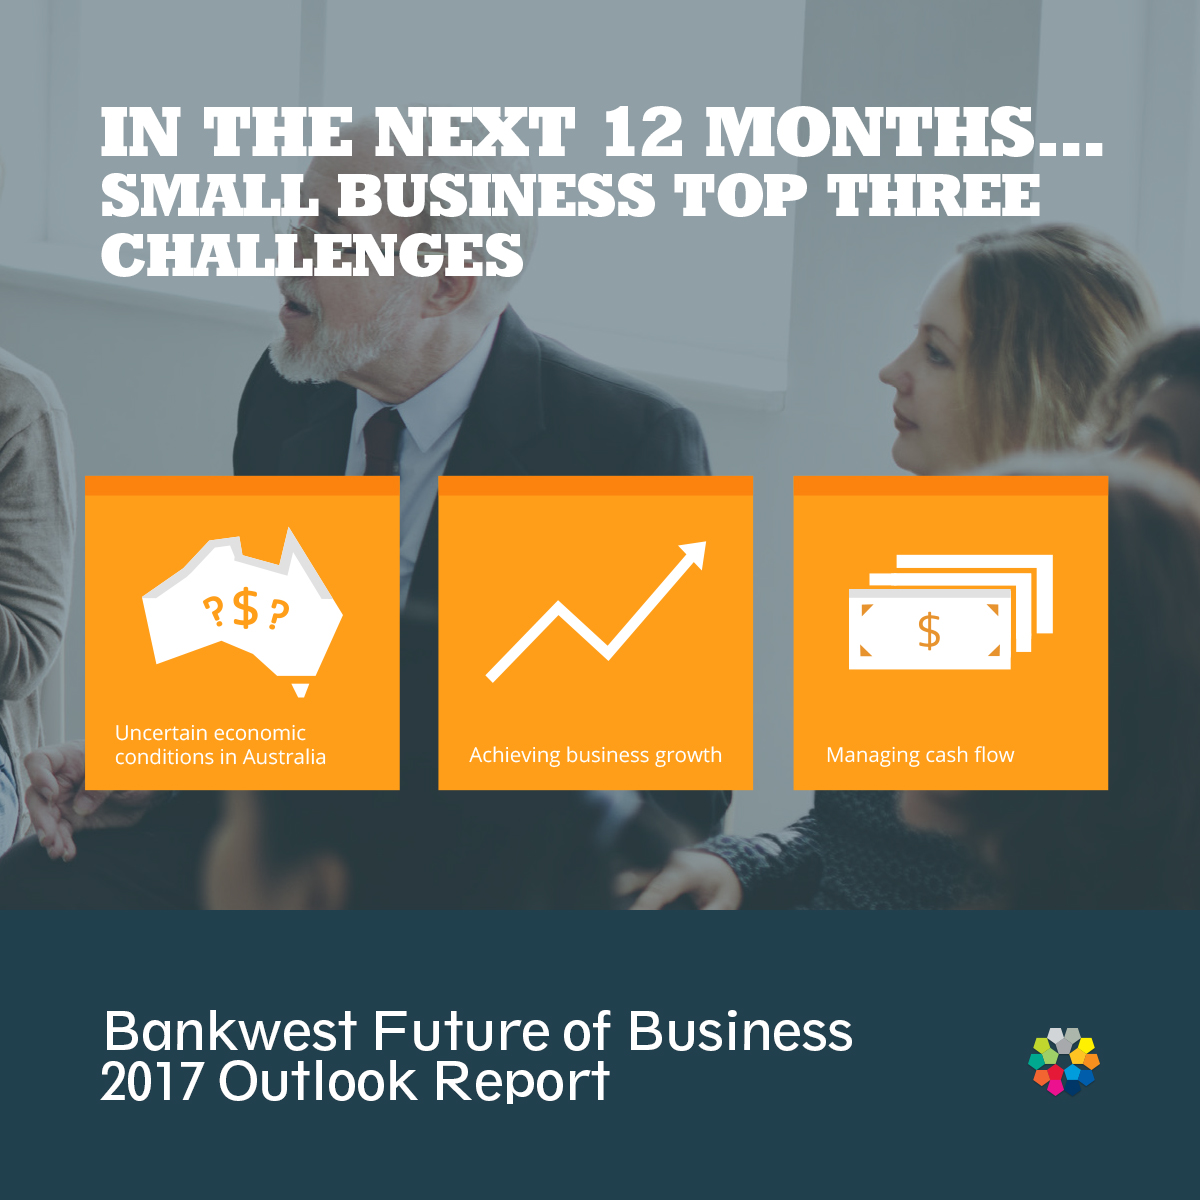 Bankwest Future of Business 2017 Outlook Report - Small business top three challenges